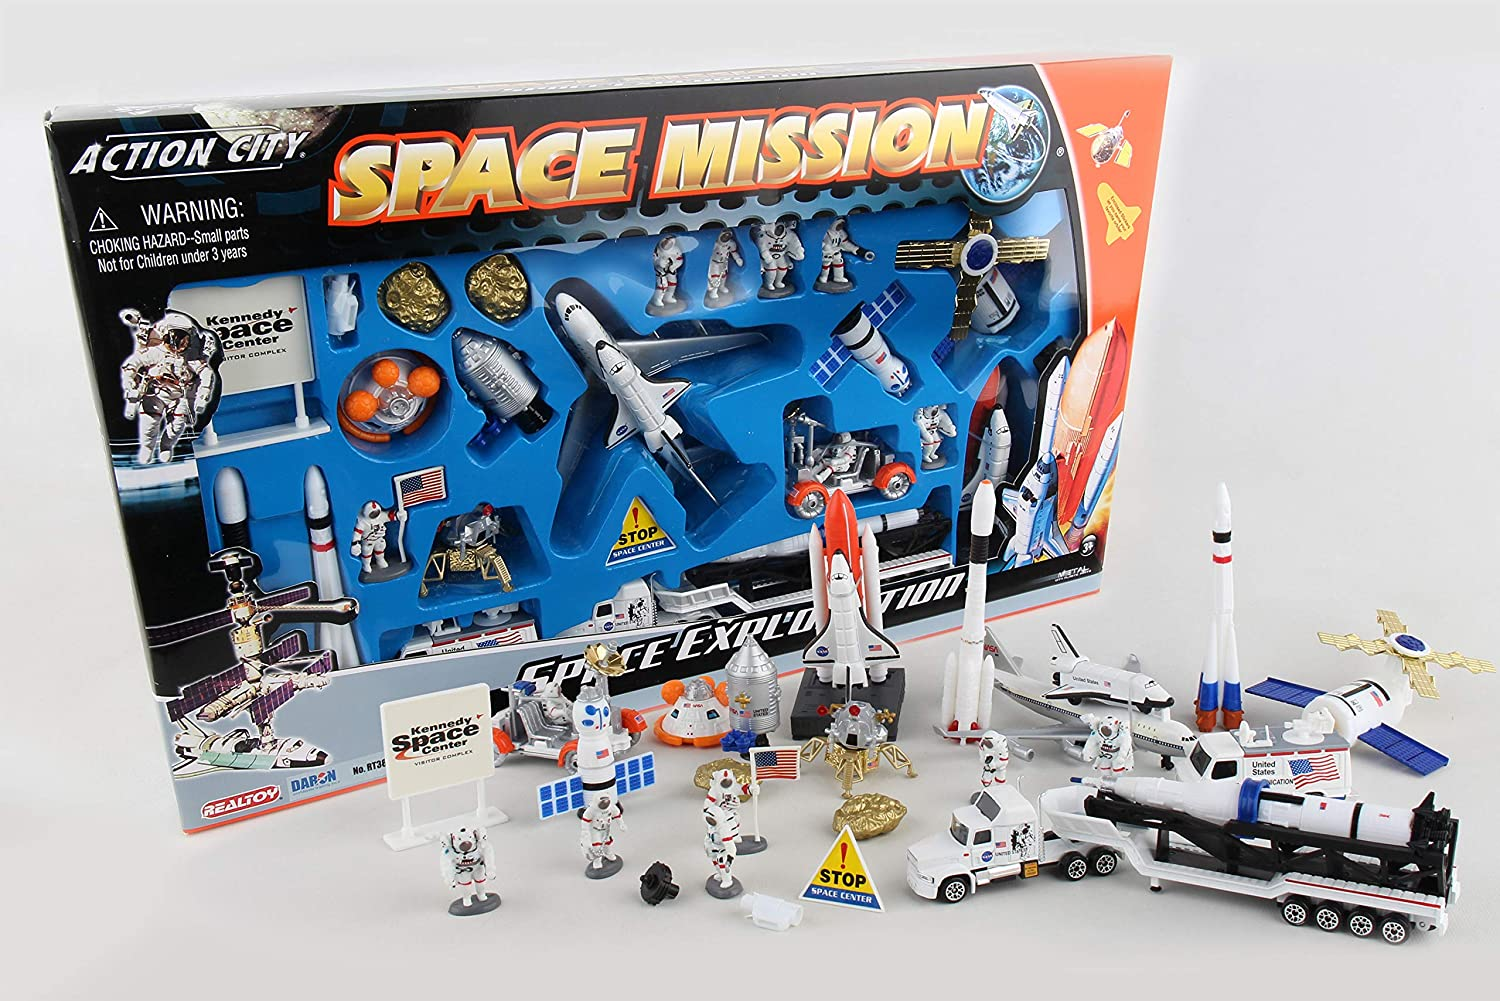 Space Shuttle with Kennedy Space Center Sign 28 Piece